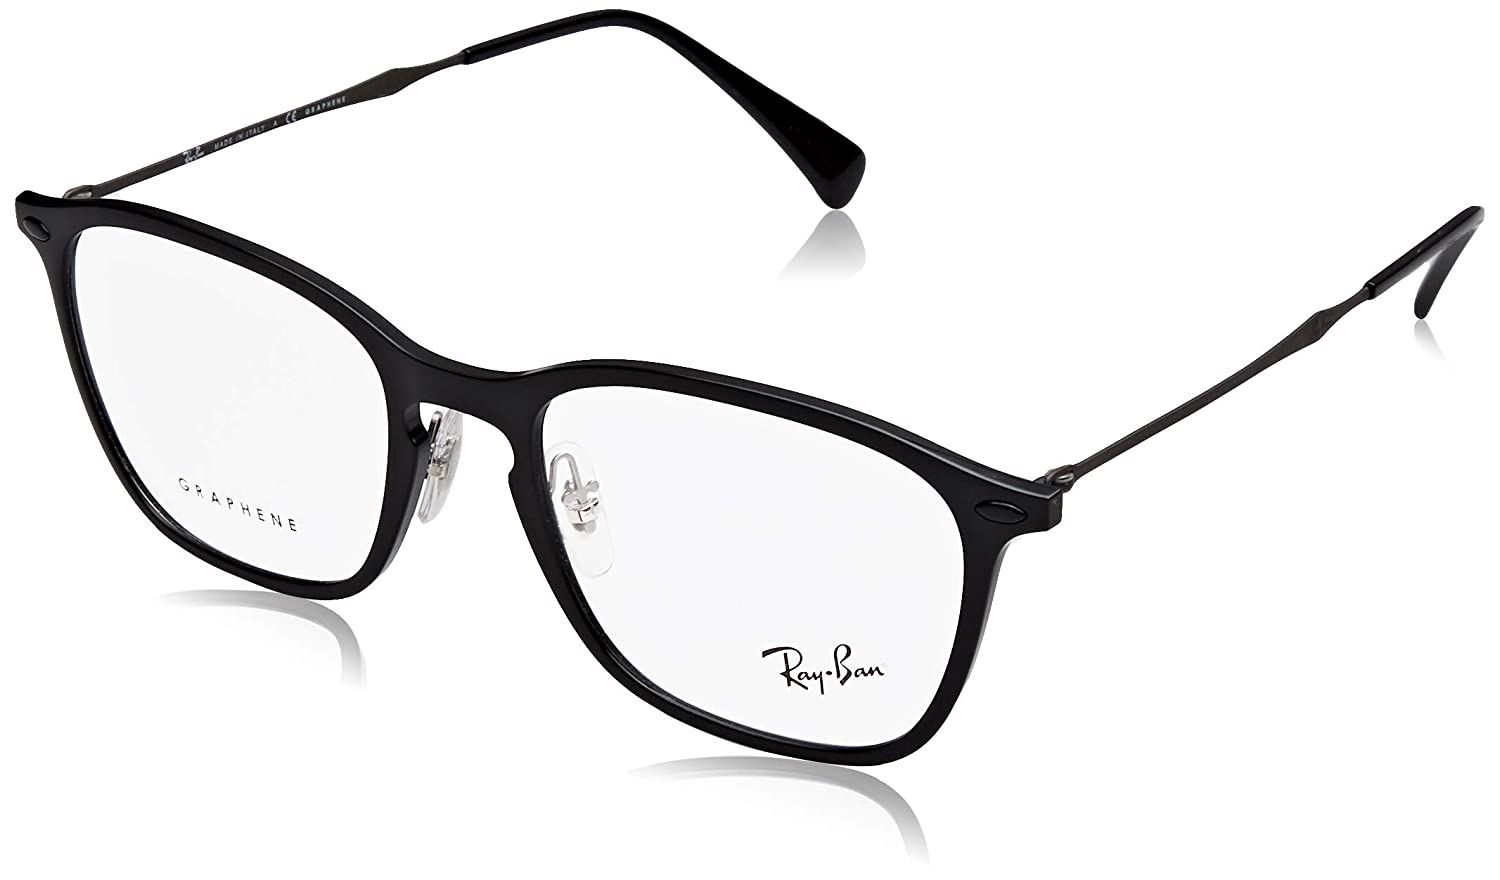 Amazon.com: Ray-Ban rx8955 – 8025 – anteojos 53 mm.: Clothing